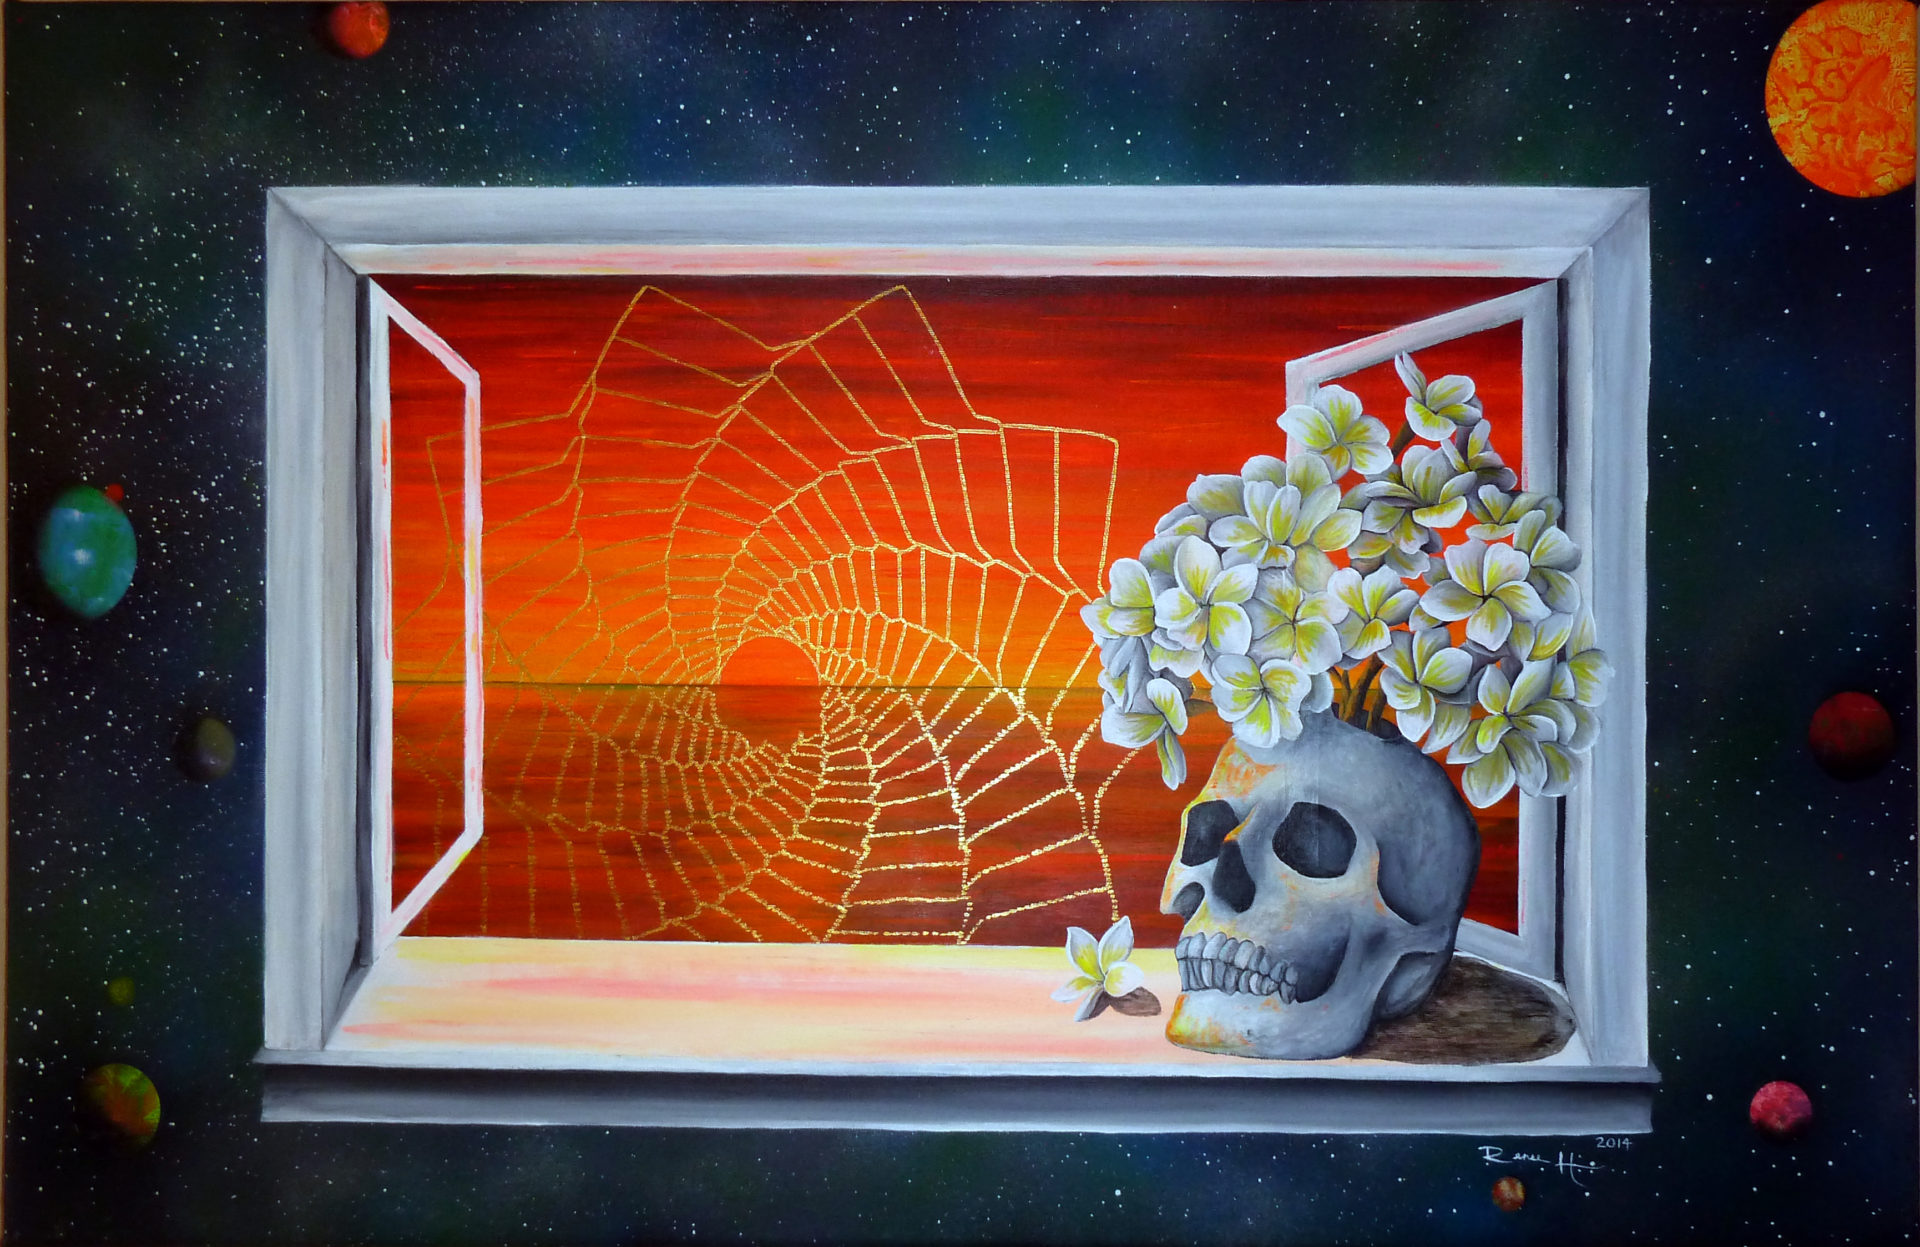 A Conventional Multidimensional View of Life & Death